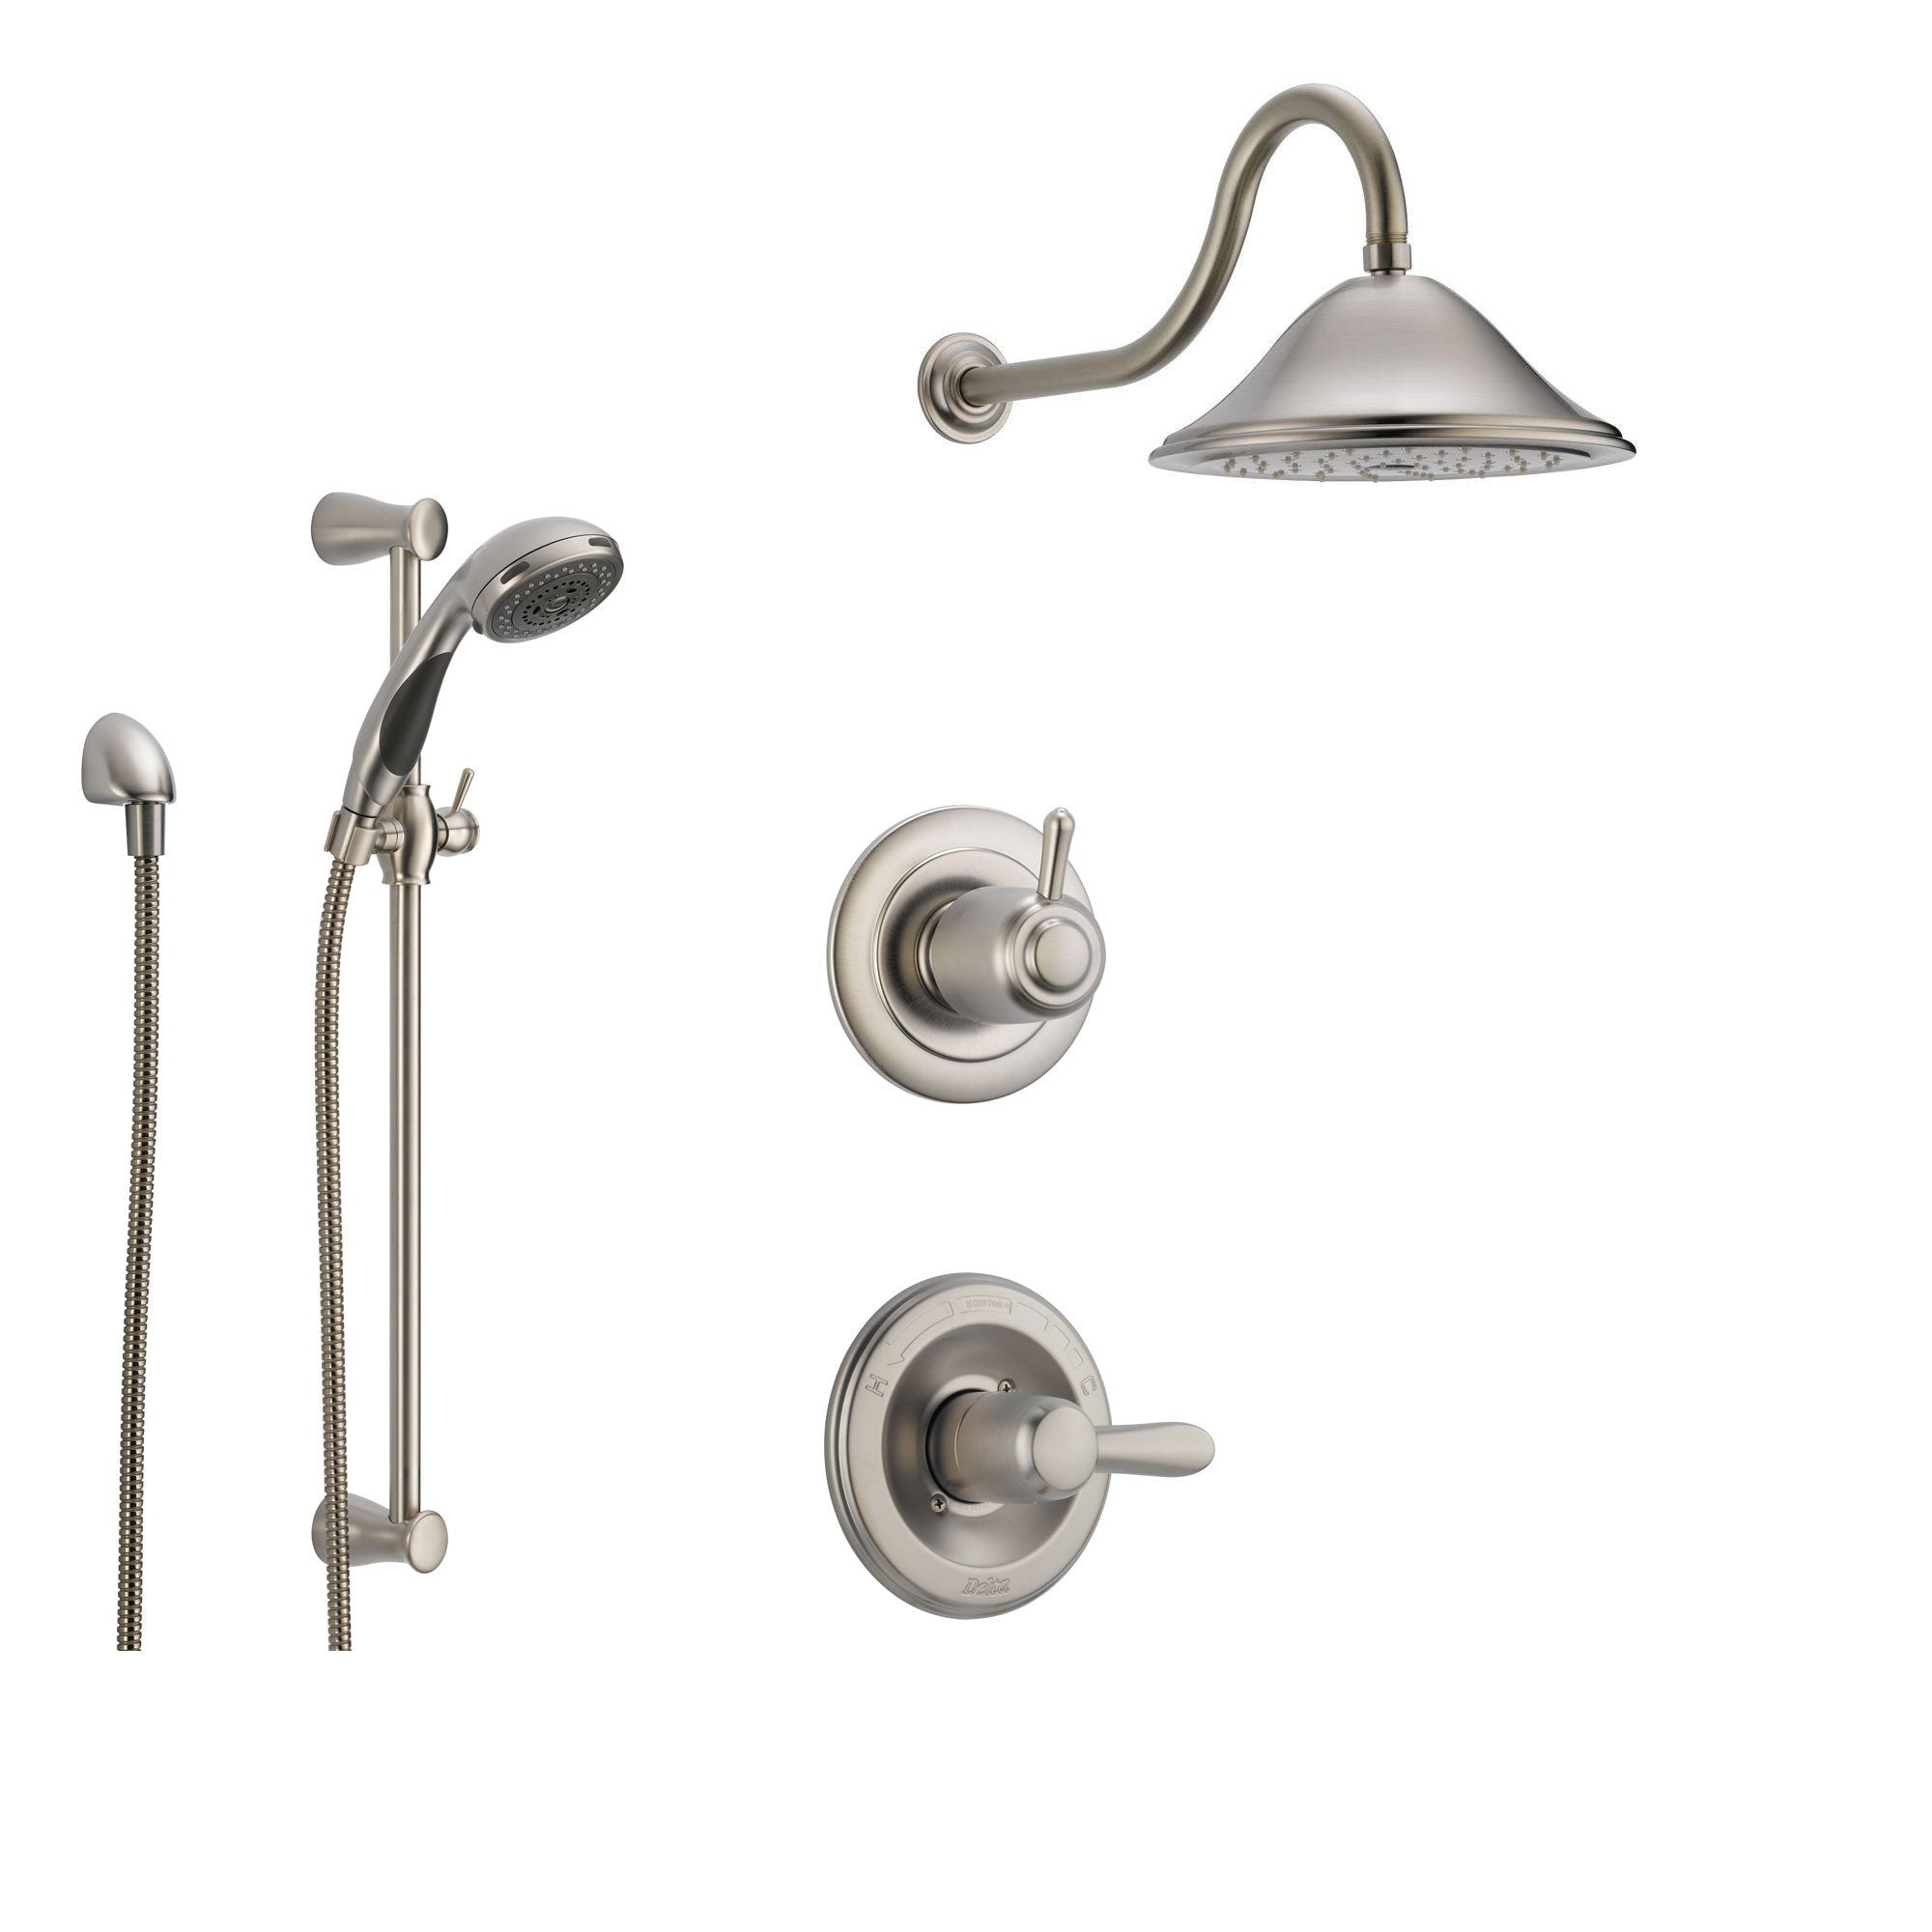 High Quality Delta Lahara Stainless Steel Shower System With Normal Shower Handle,  3 Setting Diverter,